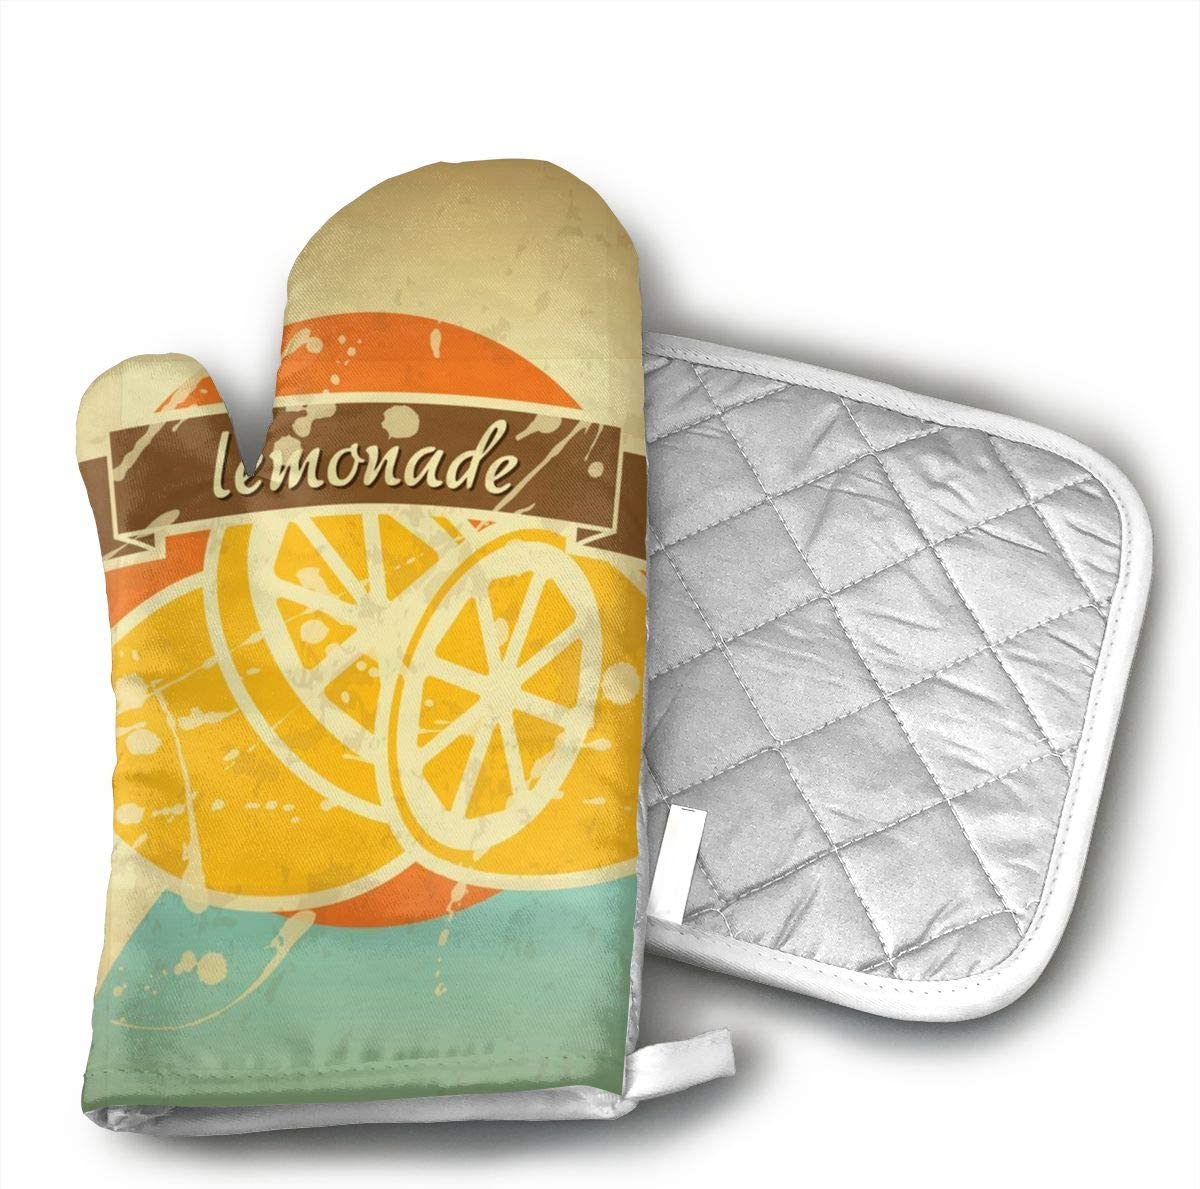 Wiqo9 Lemonade Retro Poster Oven Mitts and Pot Holders Kitchen Mitten Cooking Gloves,Cooking, Baking, BBQ.